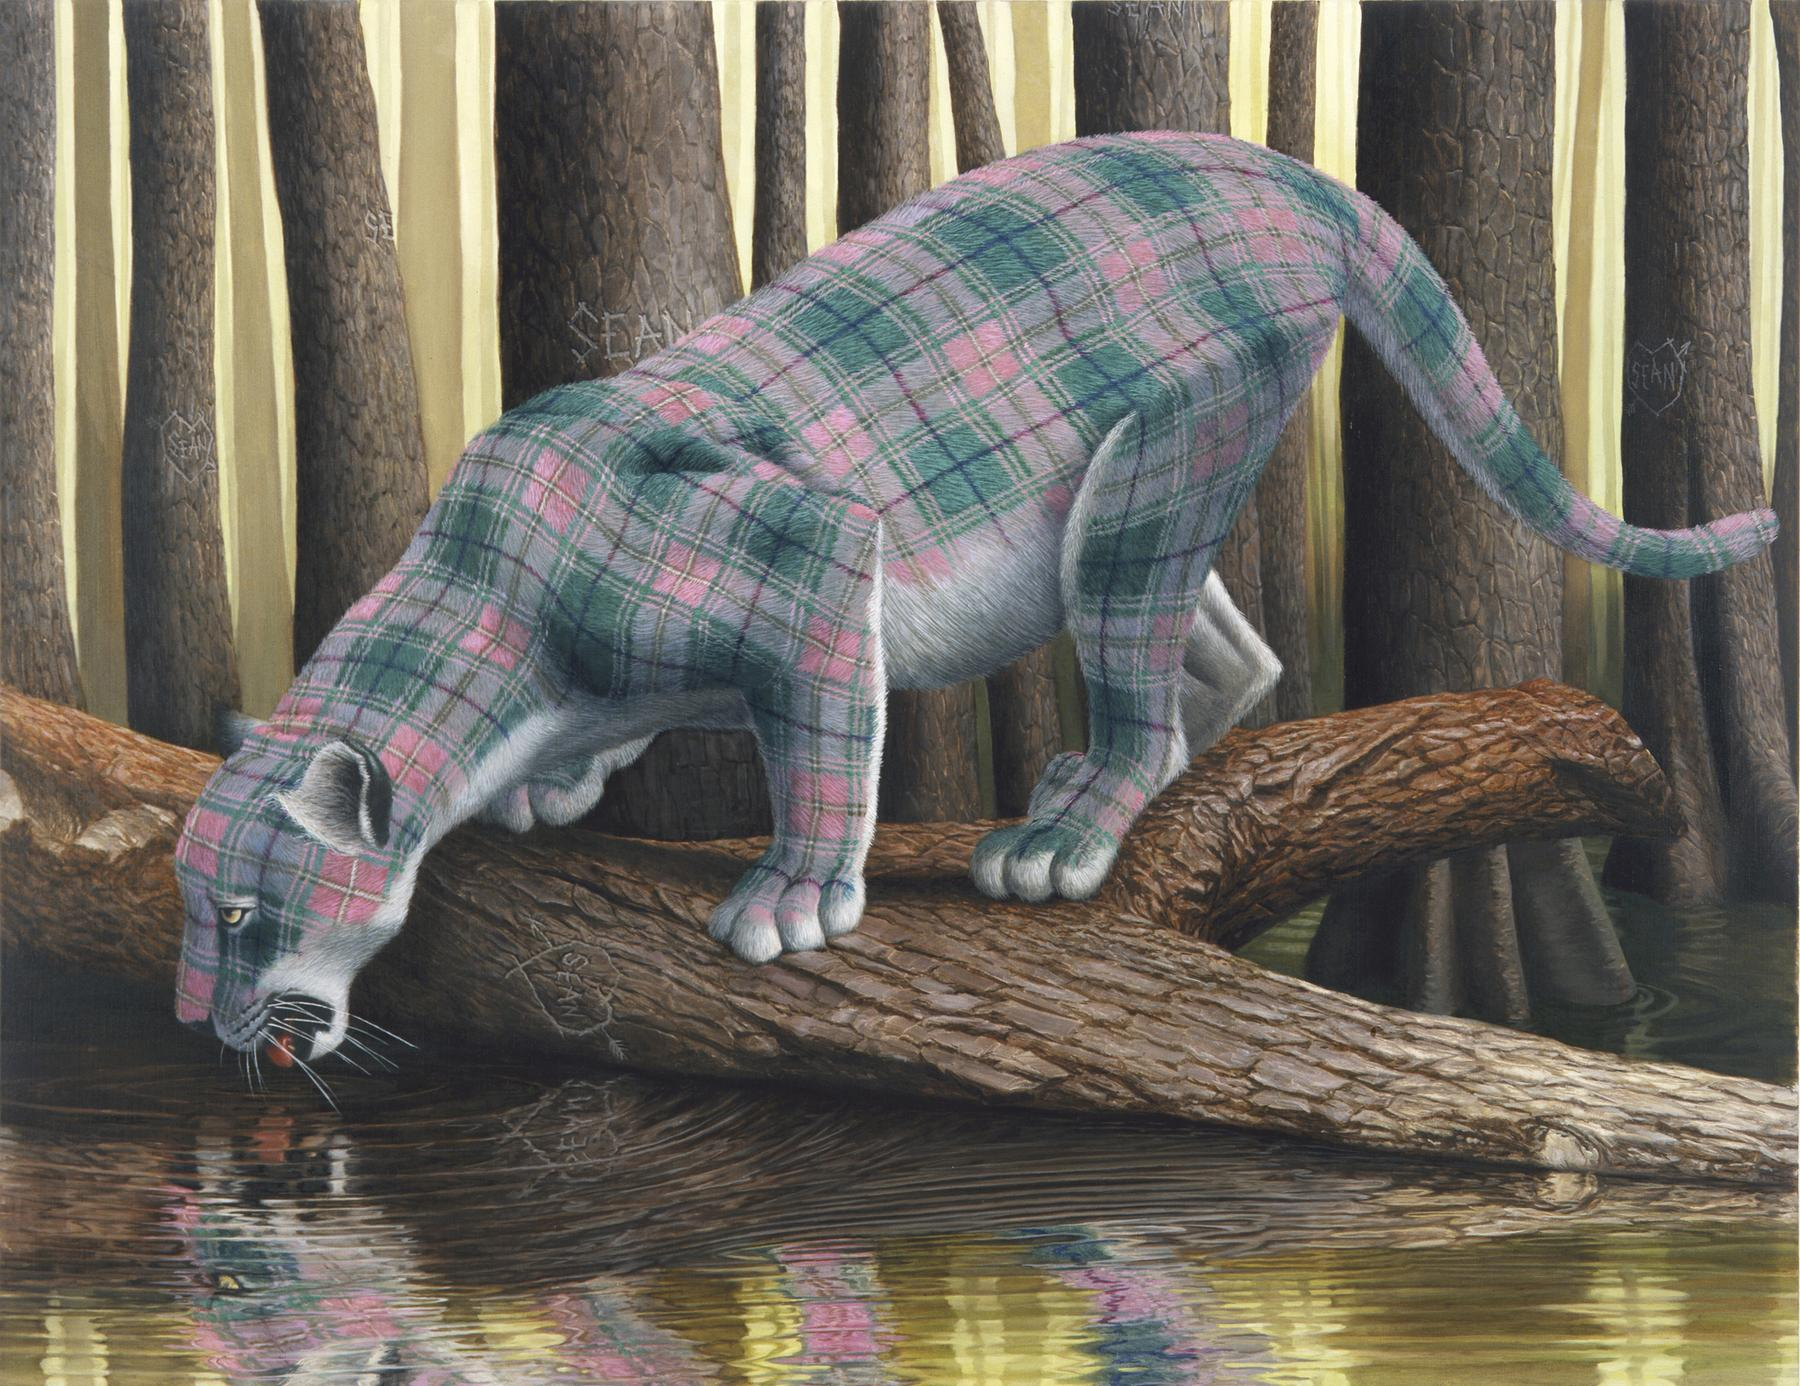 Delightfully Surreal Paintings Of Plaid Animals By Sean